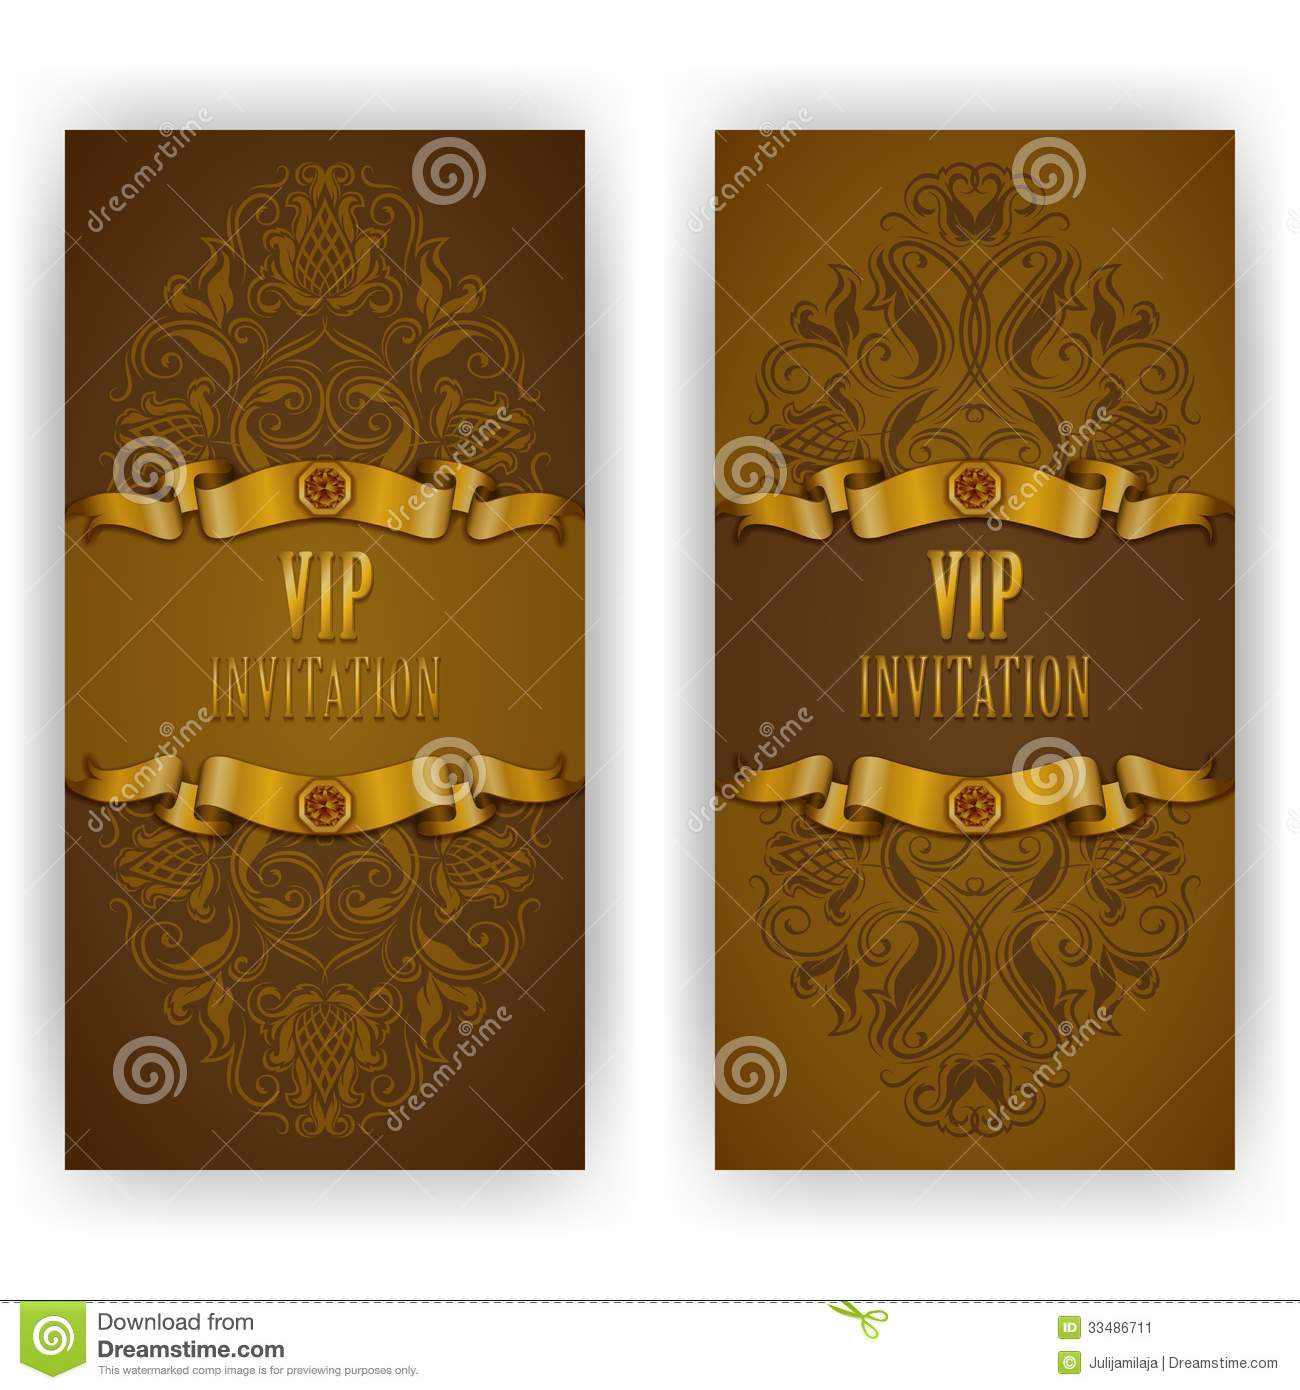 elegant template vip luxury invitation card lace ornament place text floral elements ornate background vector 33486711 elegant template for vip luxury invitation stock image image,Luxury Invitation Cards